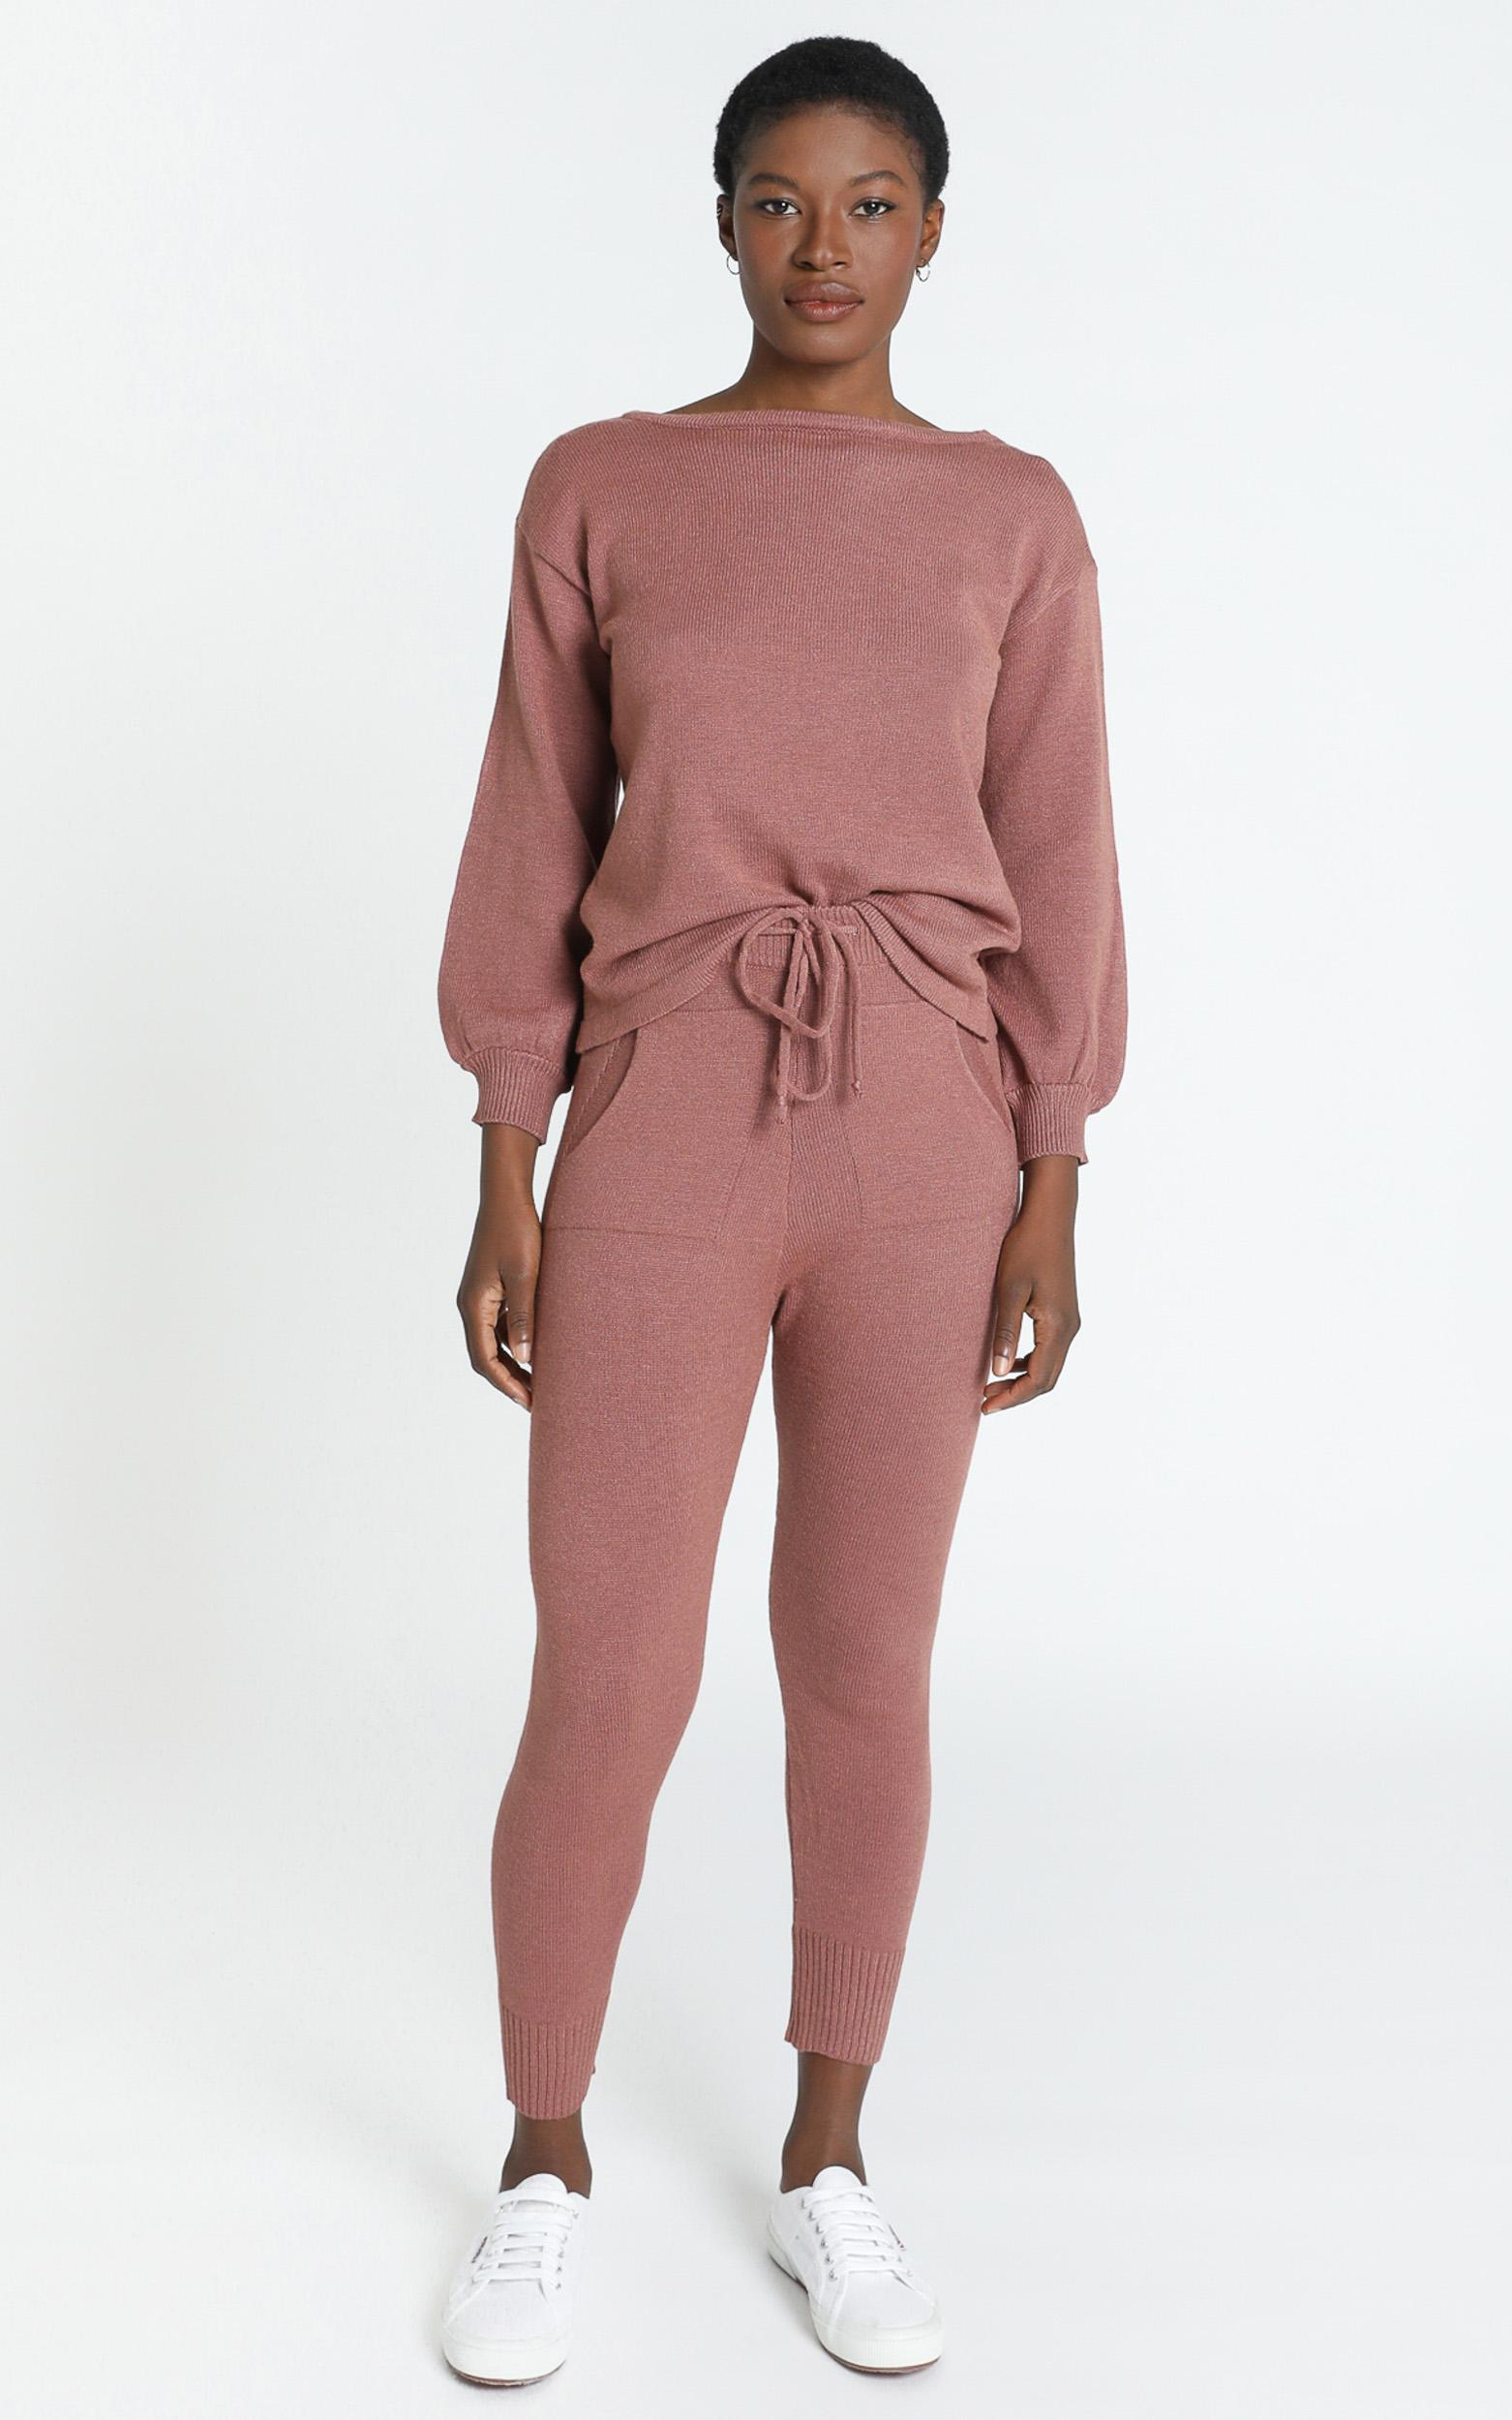 Benny Knit Pants in Dusty Rose - S, Pink, hi-res image number null